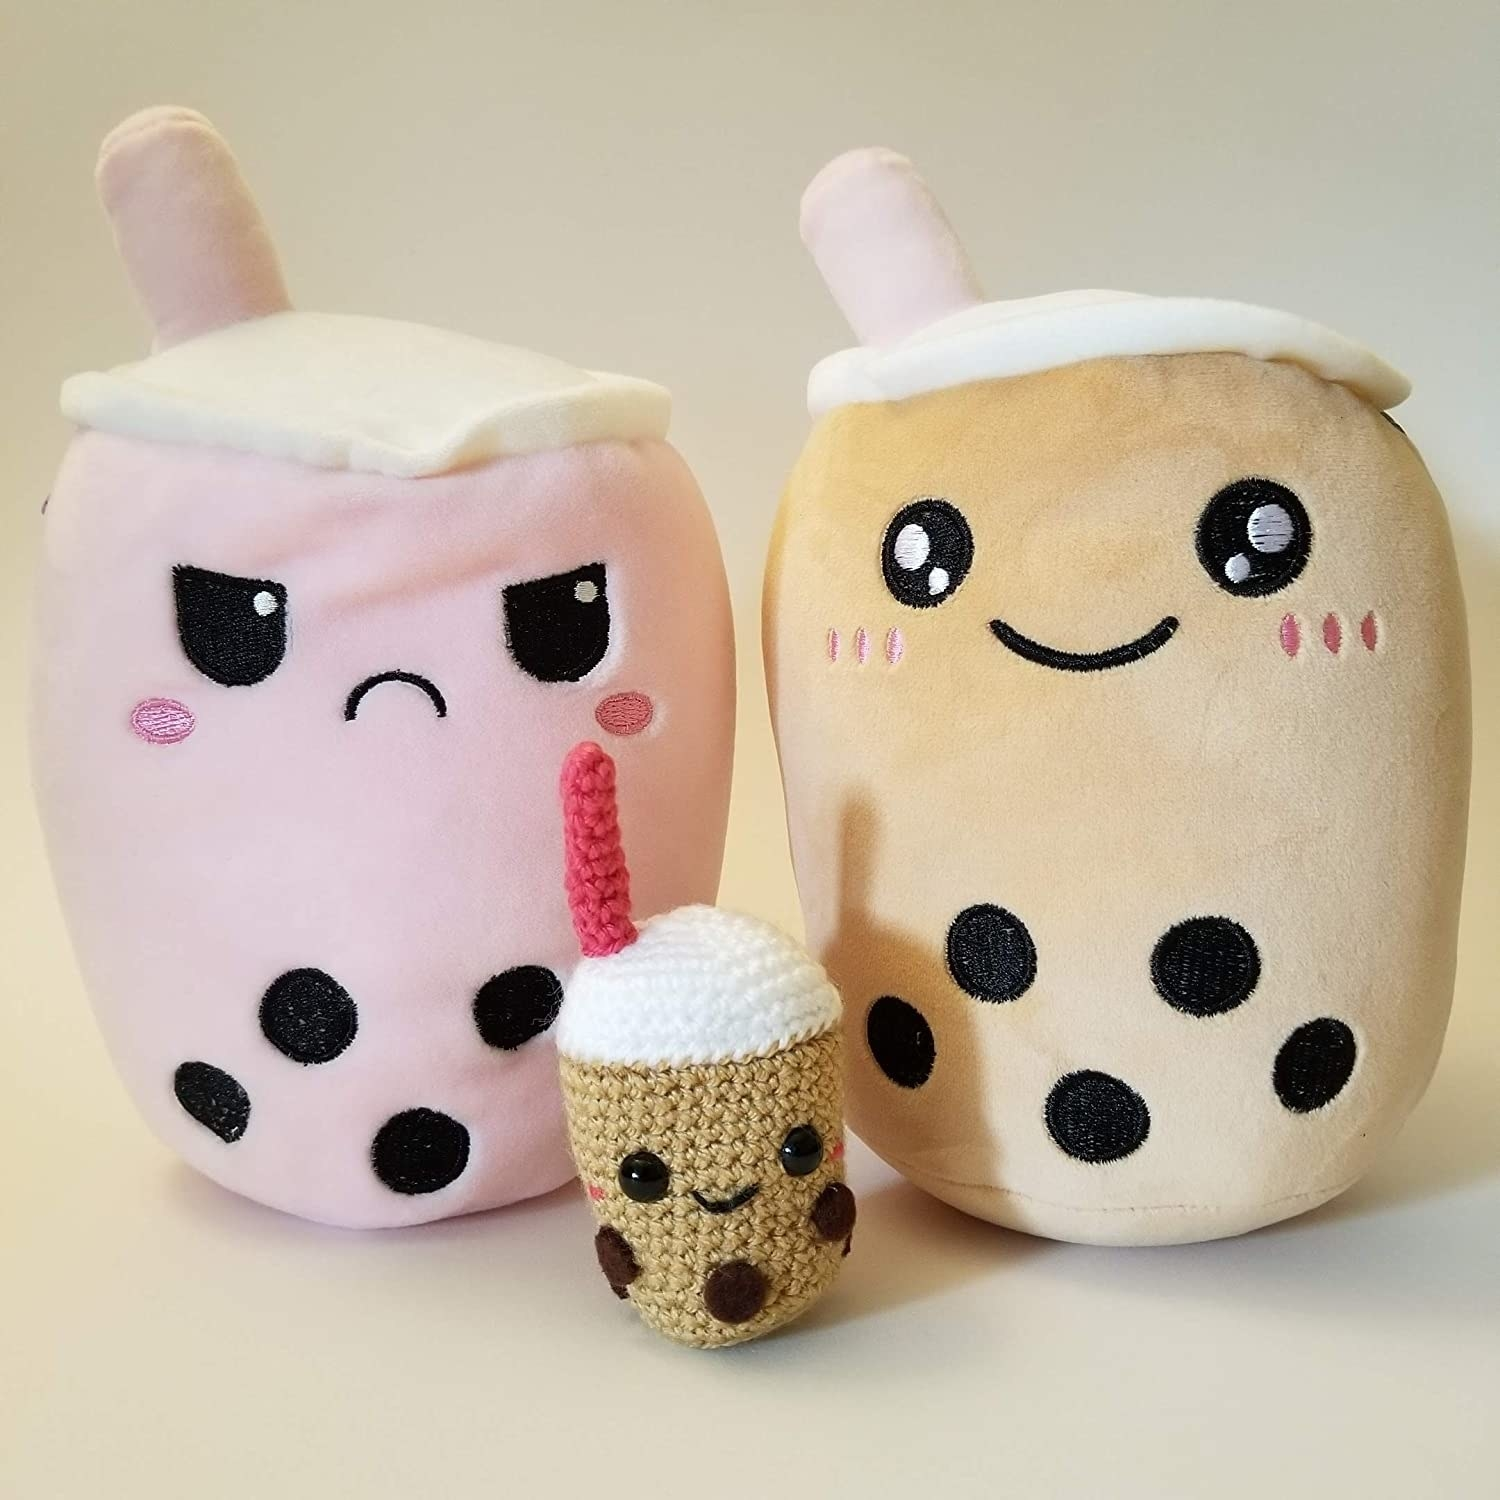 the reversible boba plushie showing the sad pink boba and happy brown boba with a crocheted boba in between the two